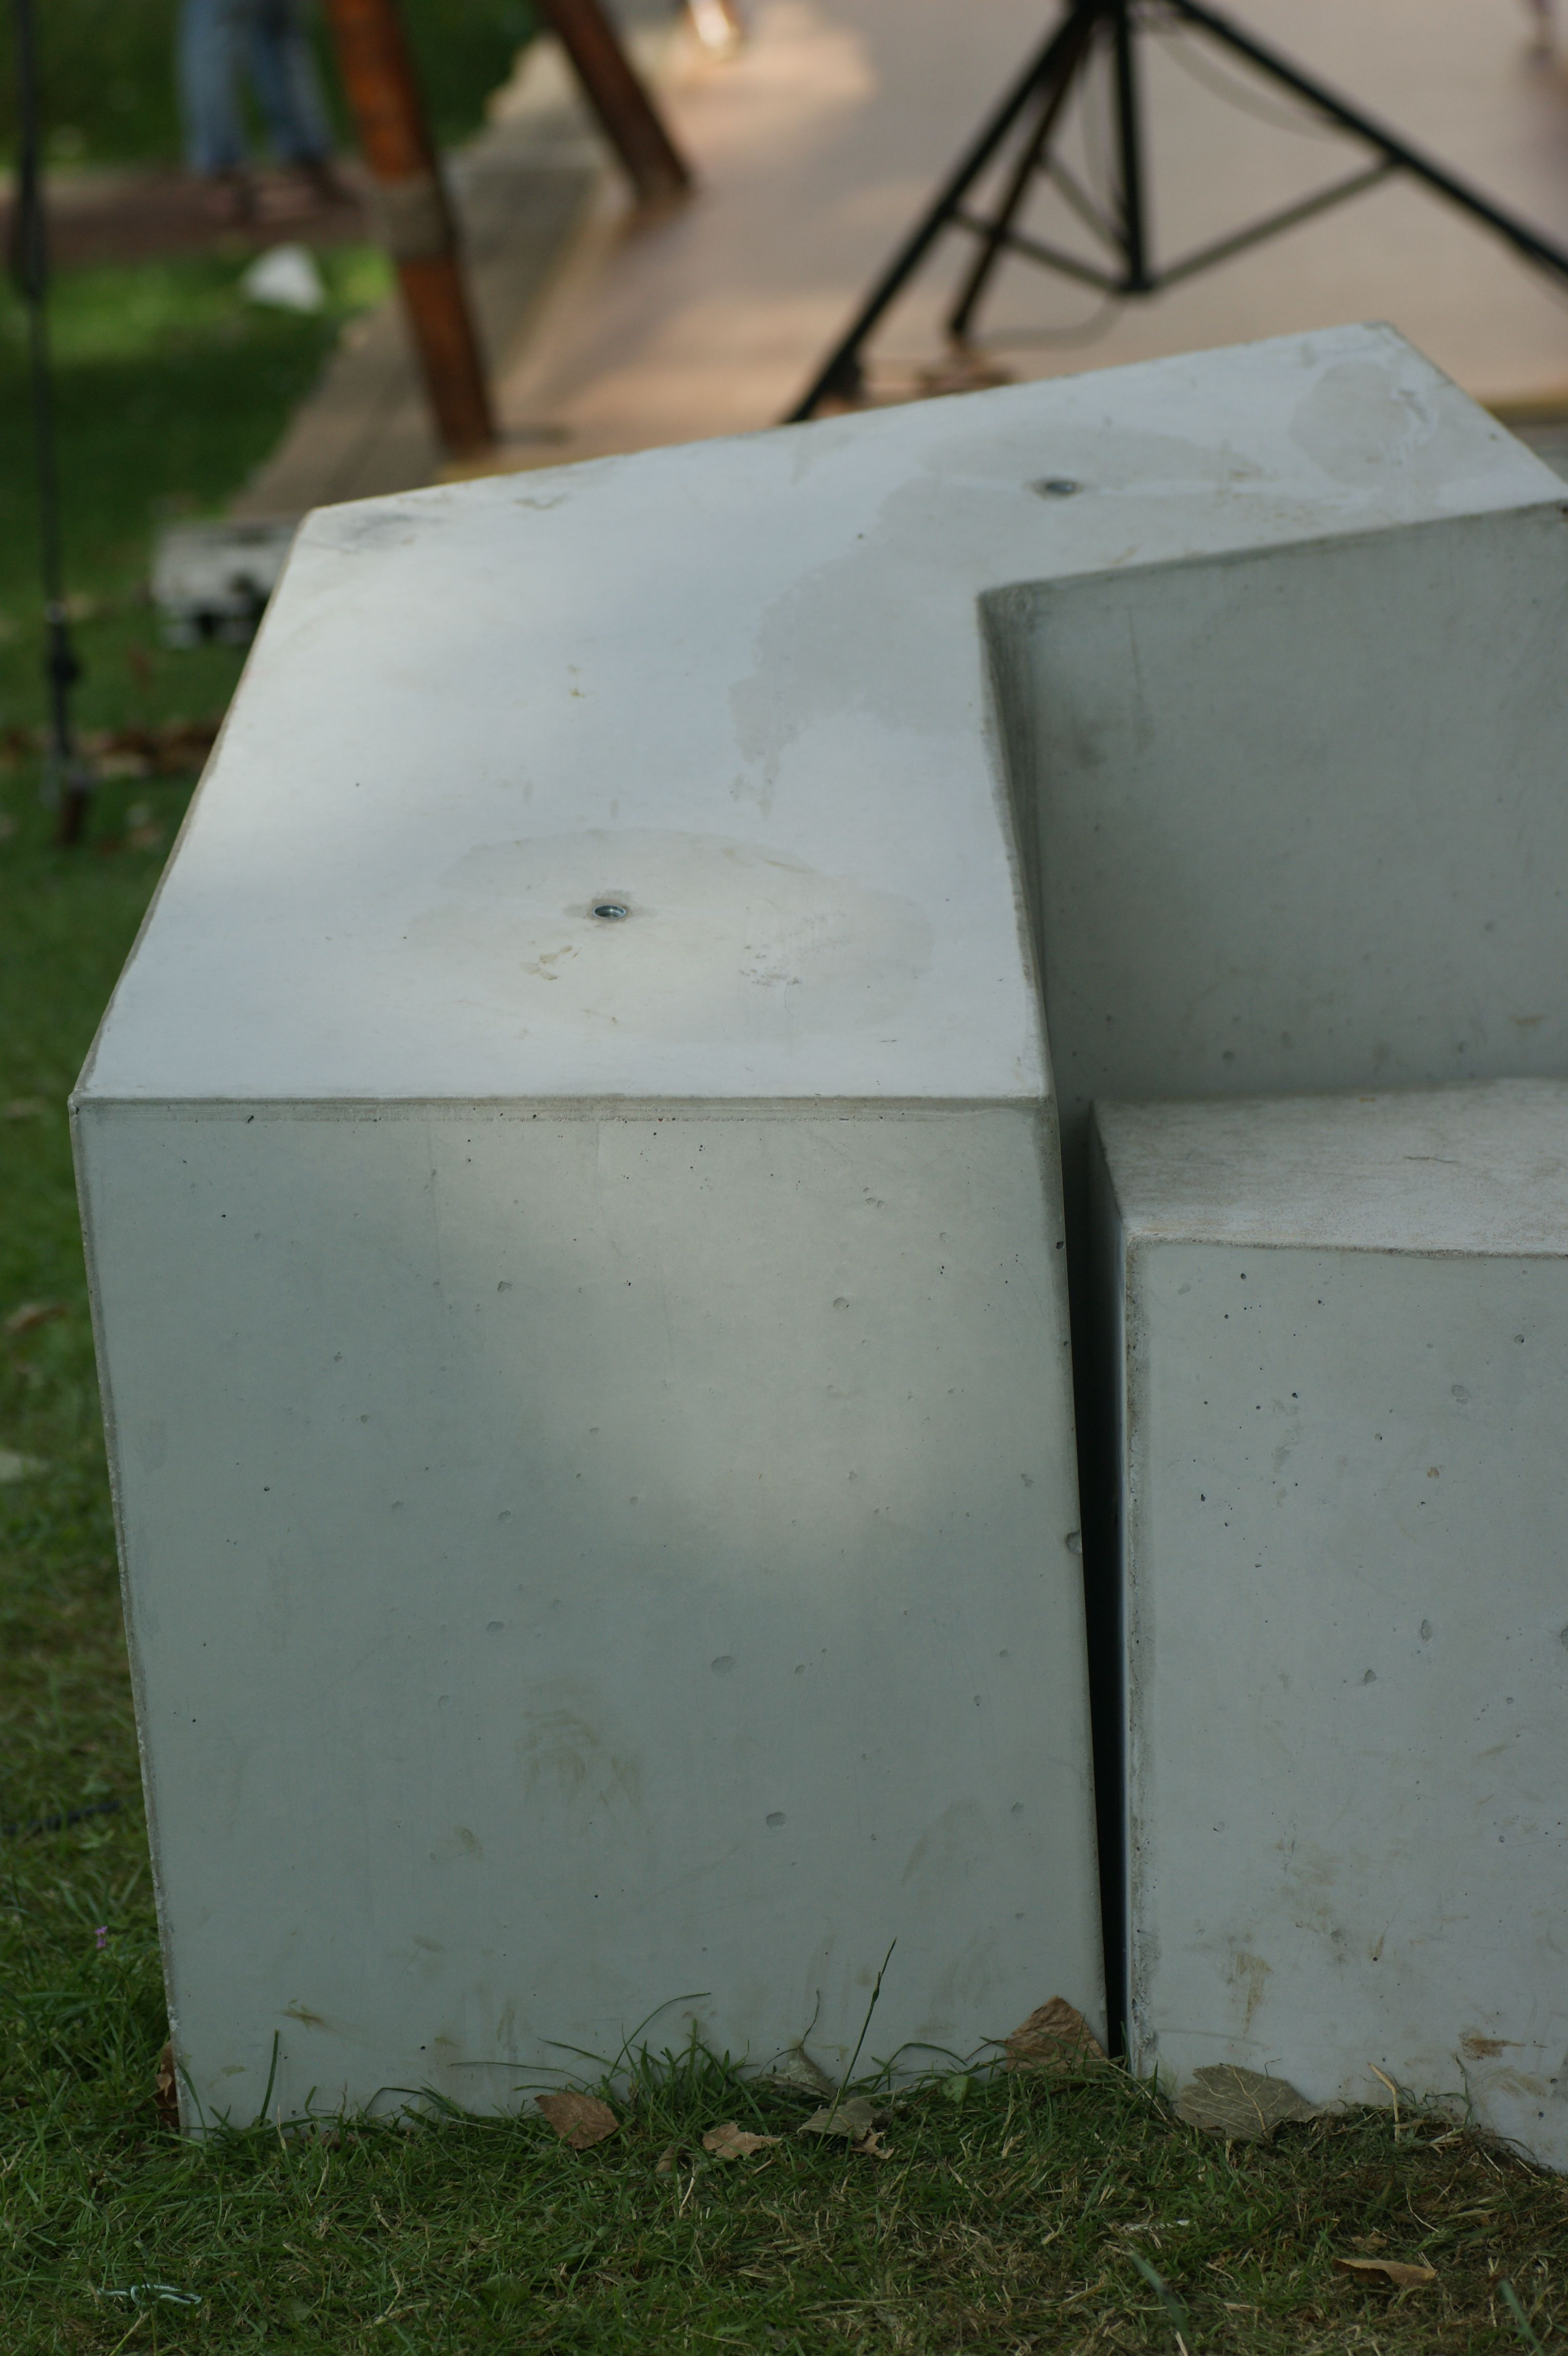 Elegant Hand Shaped Concrete Bench / Chair (detail), During Exposition At  Slokdarmfestival 2012 #